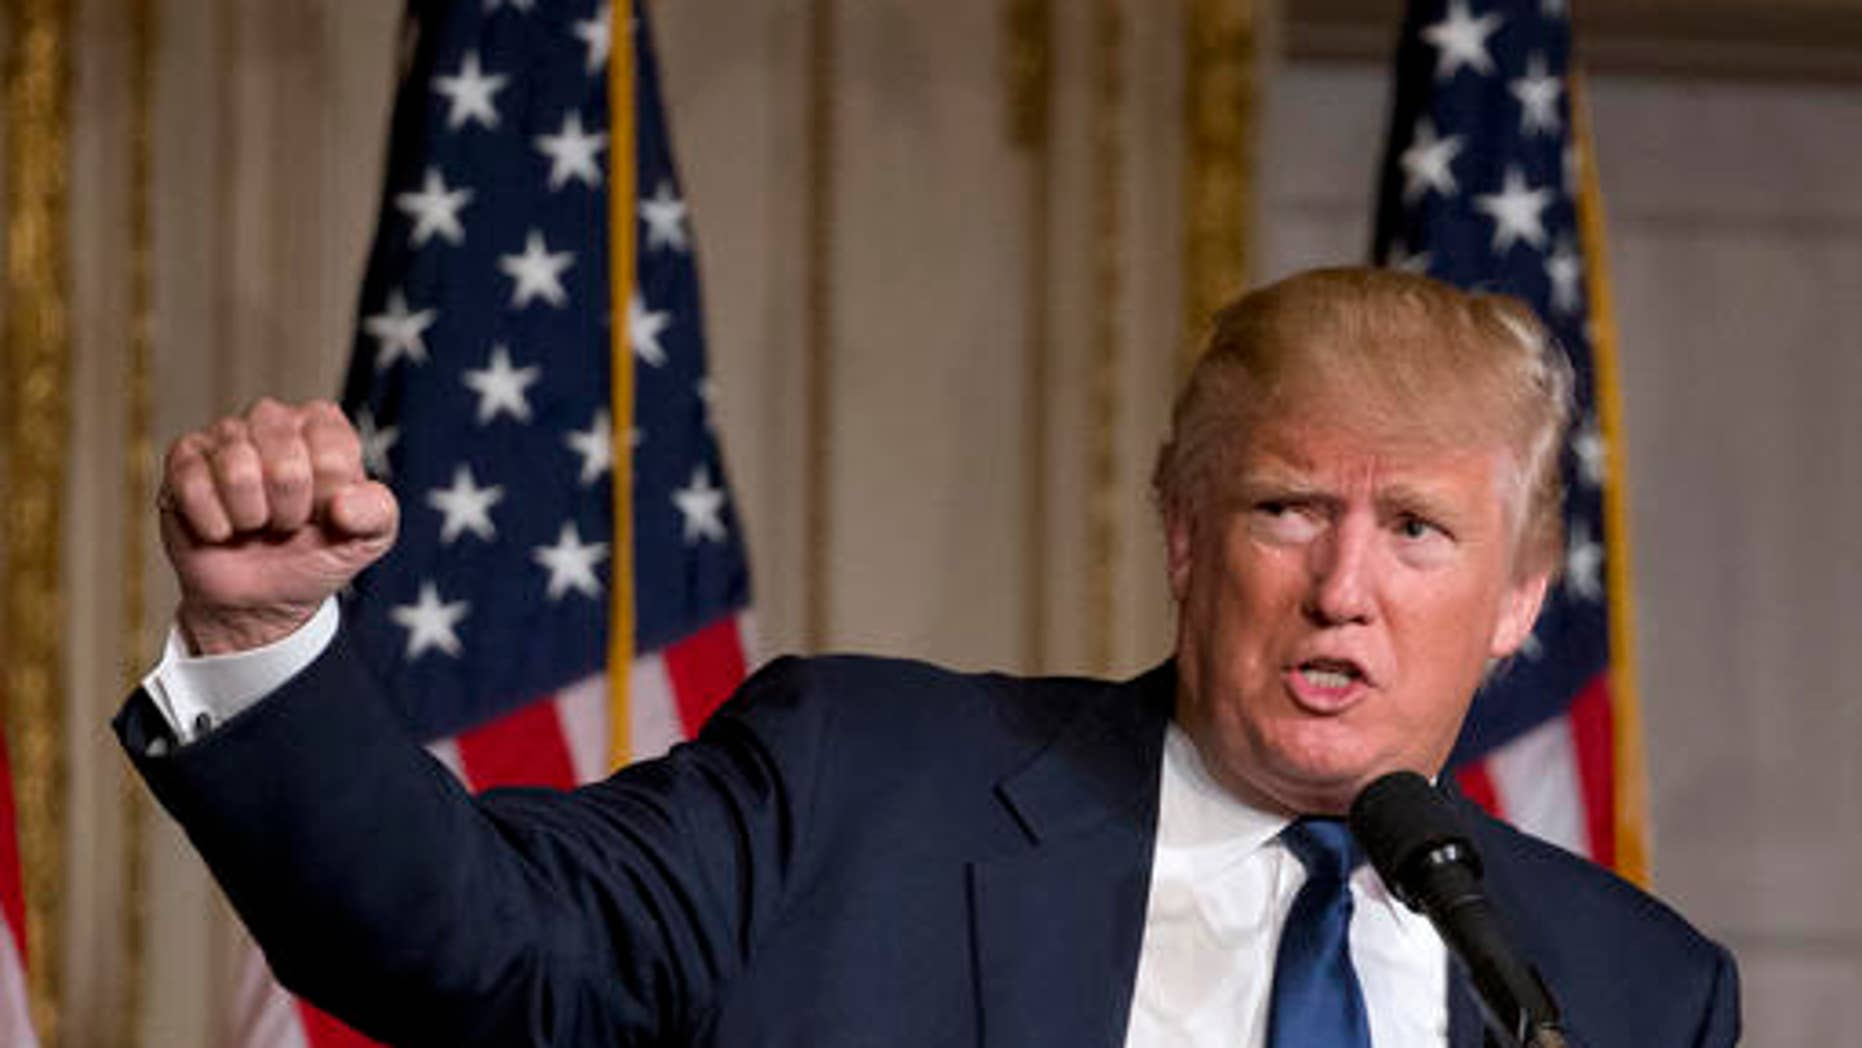 Republican presidential candidate Donald Trump speaks during the Palm Beach County GOP Lincoln Day Dinner at the Mar-A-Lago Club, Sunday, March 20, 2016, in Palm Beach, Fla. (AP Photo/Wilfredo Lee)